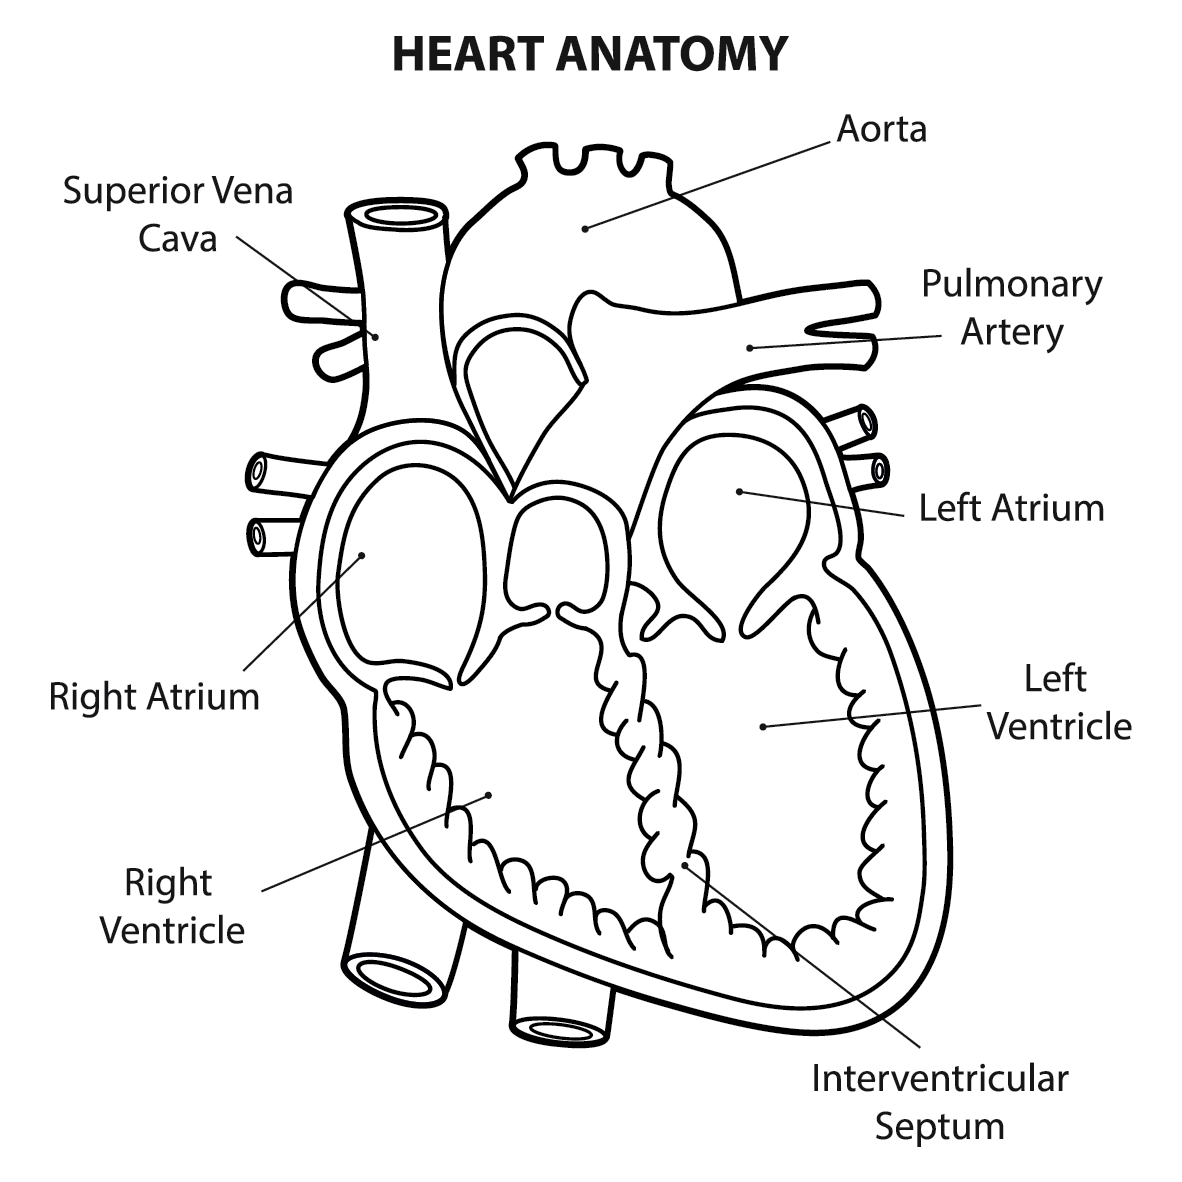 Human heart drawing images at getdrawings free for personal 1182x1182 what are the parts that make up a human heart diagrams and more ccuart Choice Image